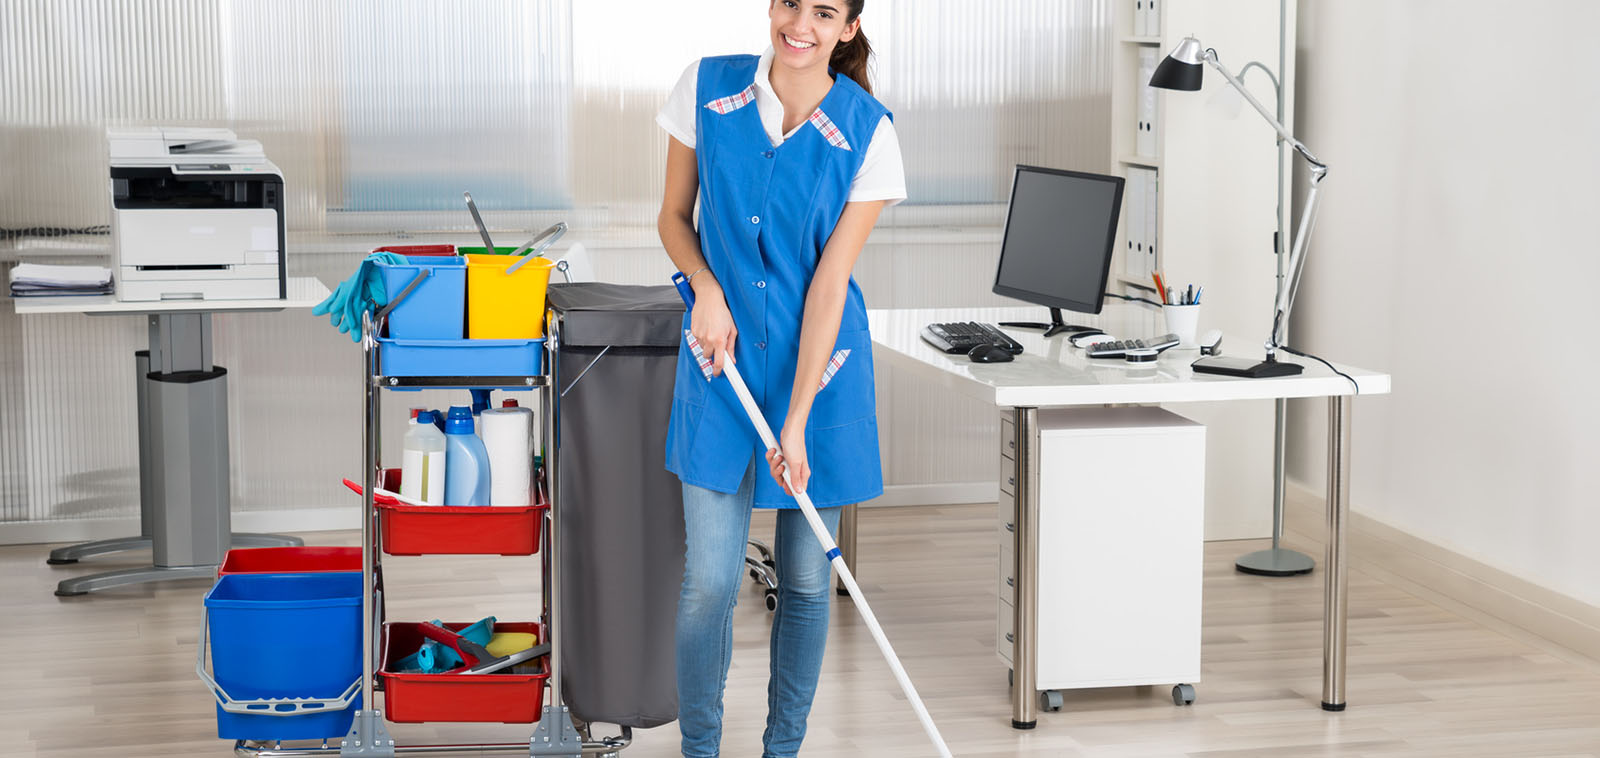 Best Professional Cleaners Services Ealing | Tenancy Cleaners